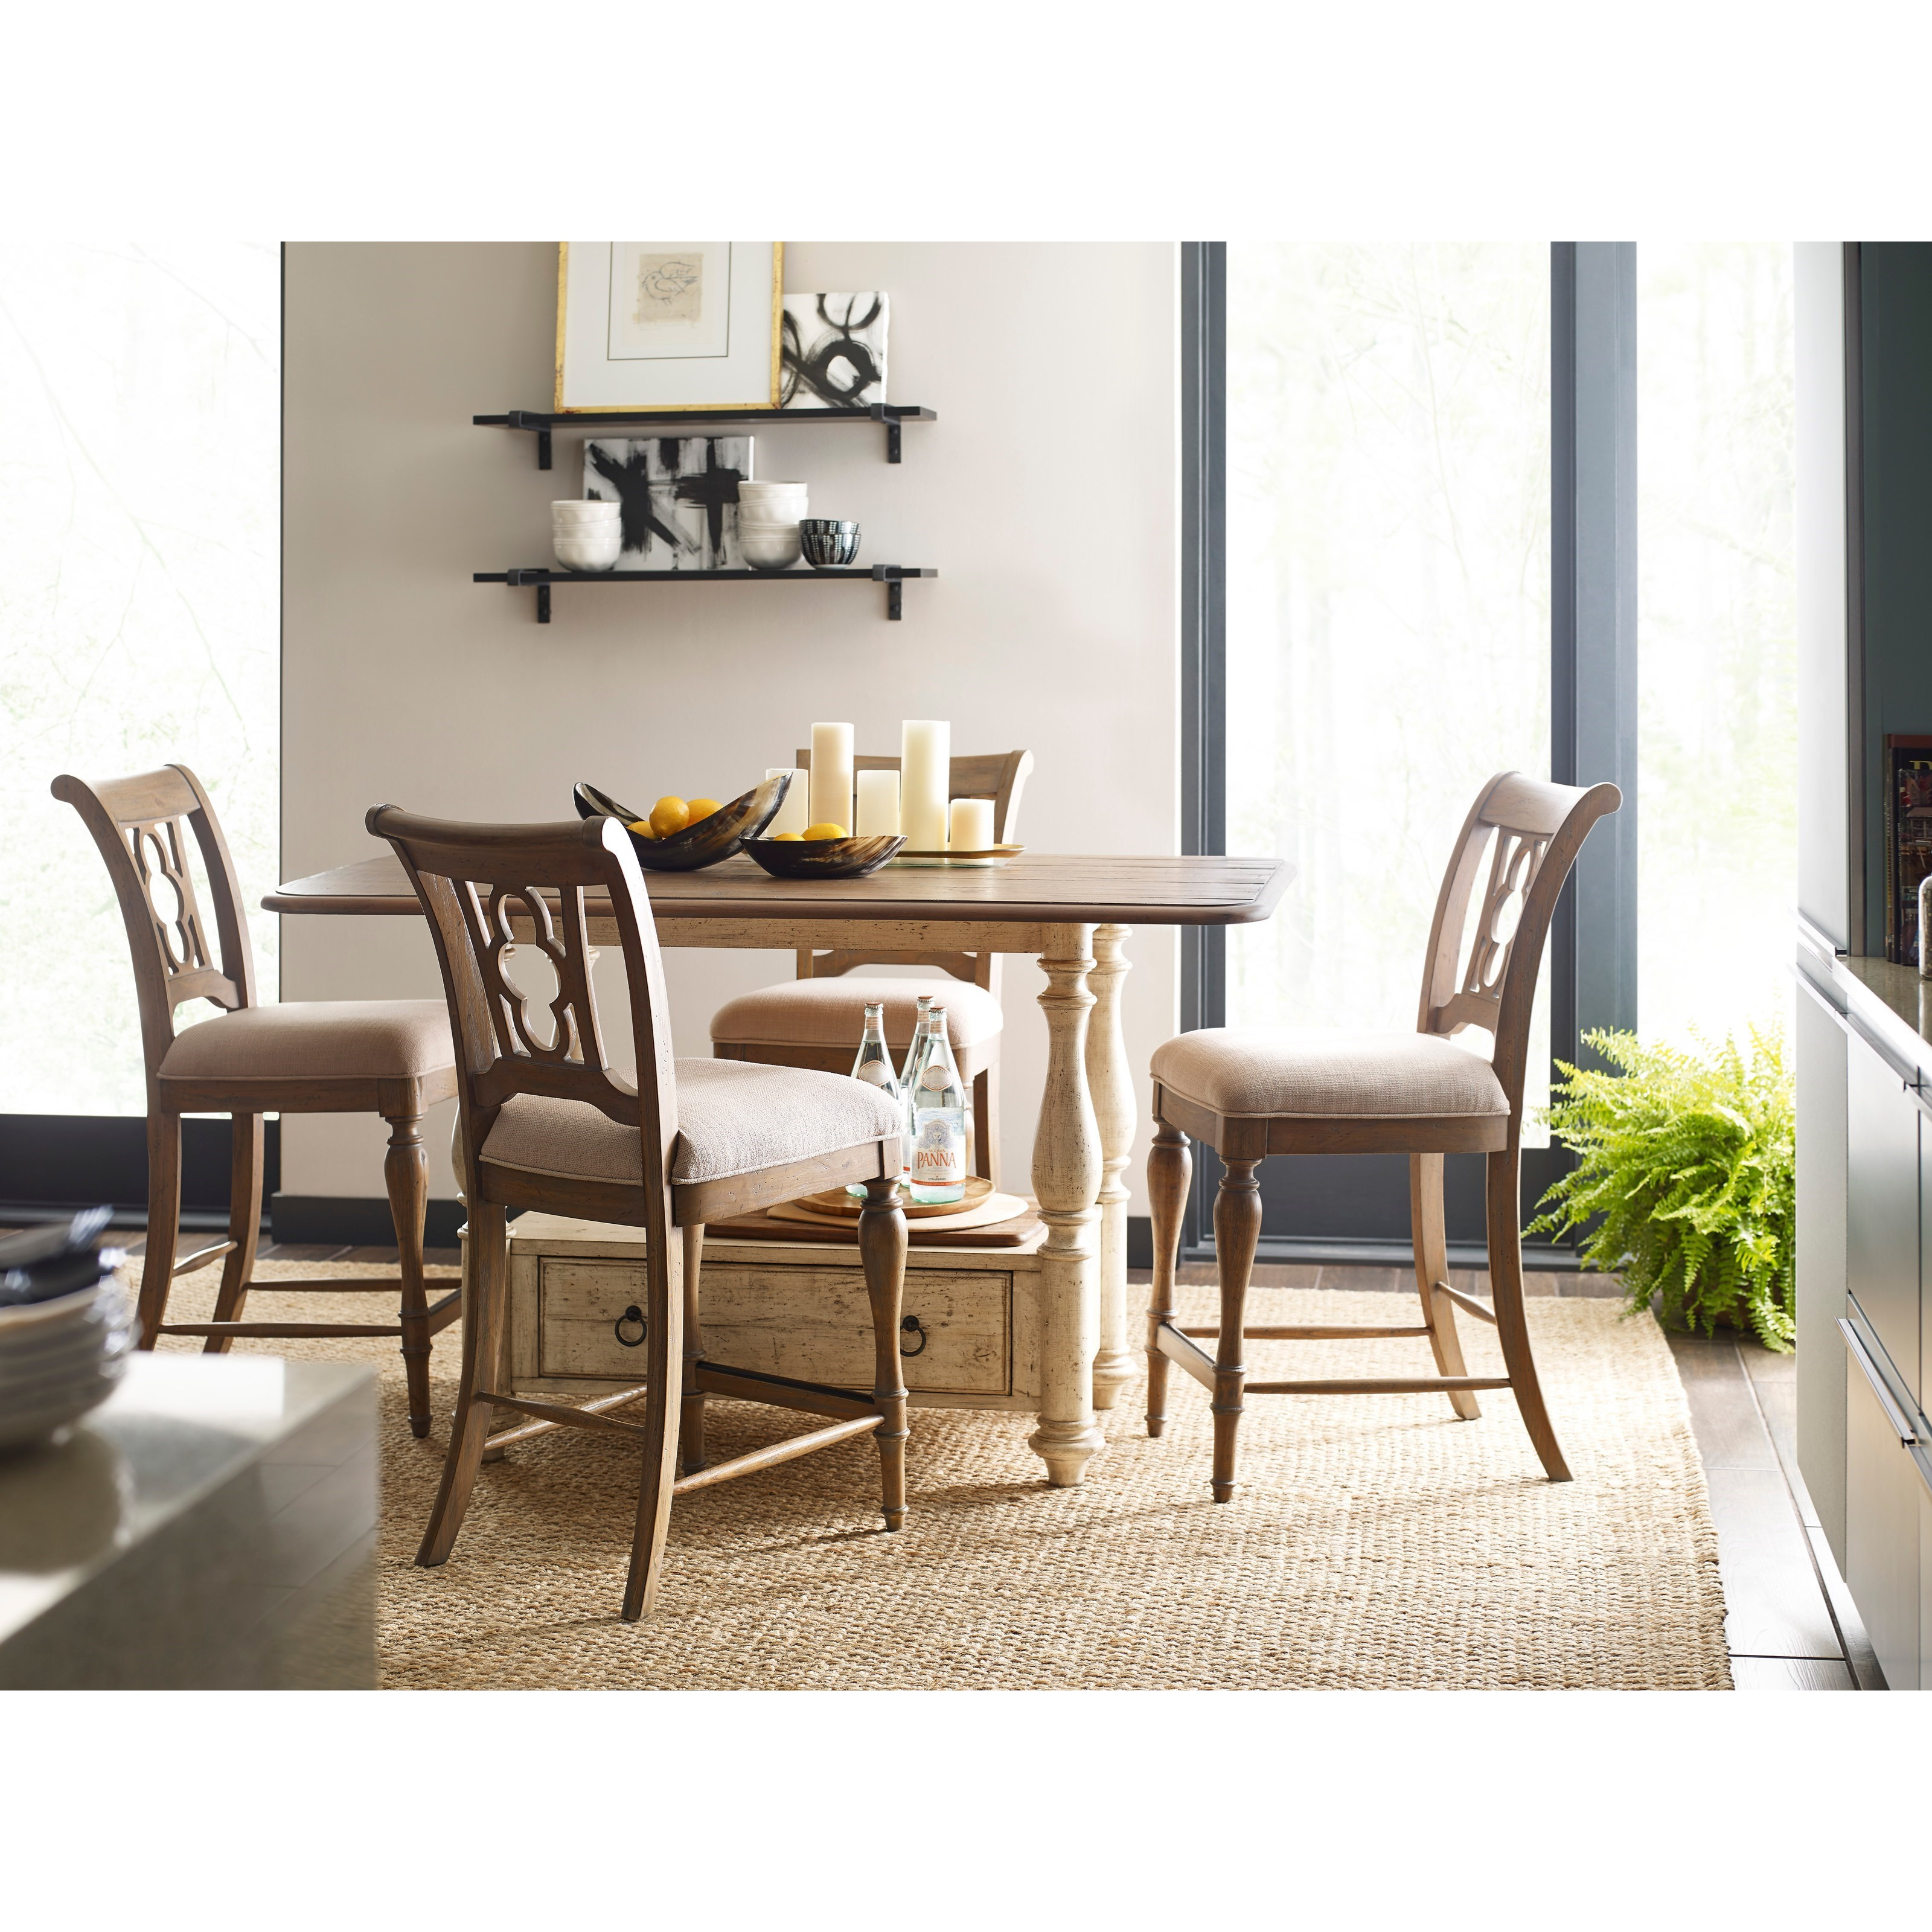 Weatherford 5-Piece Kitchen Island and Chair Set by Kincaid Furniture at Belfort Furniture